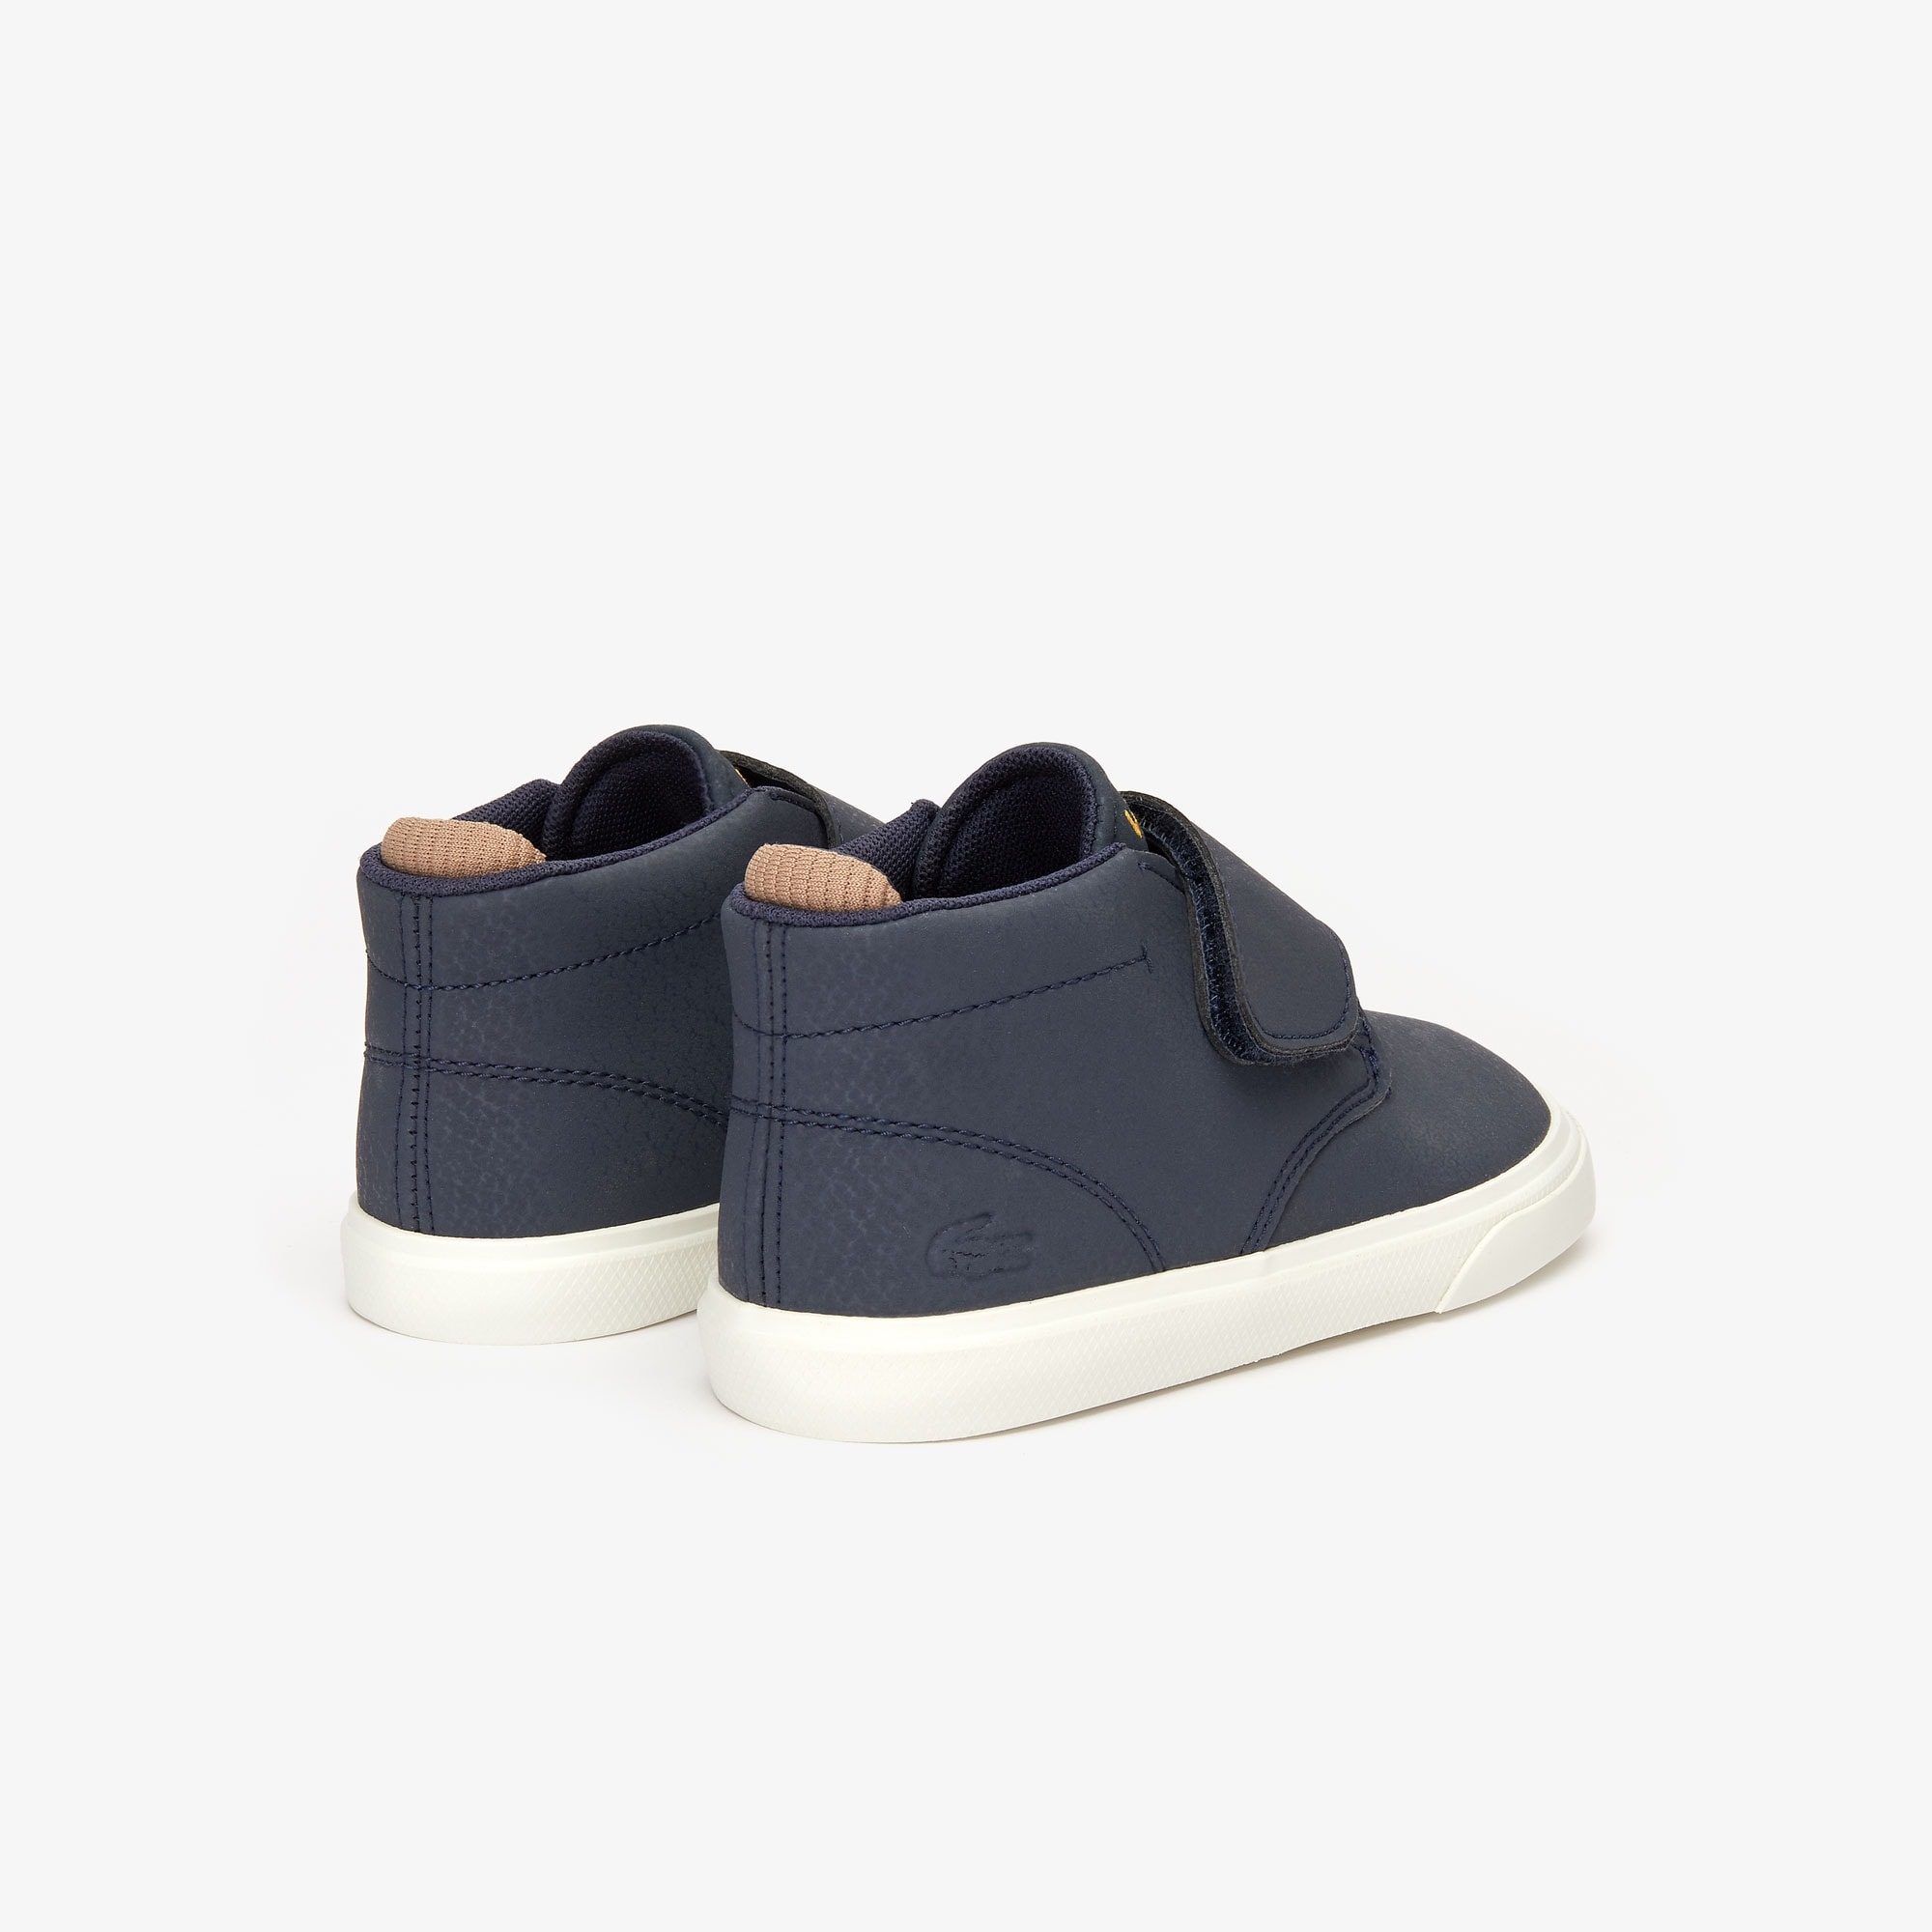 Kinder Strap-Sneakers CARNABY EVO aus Synthetik